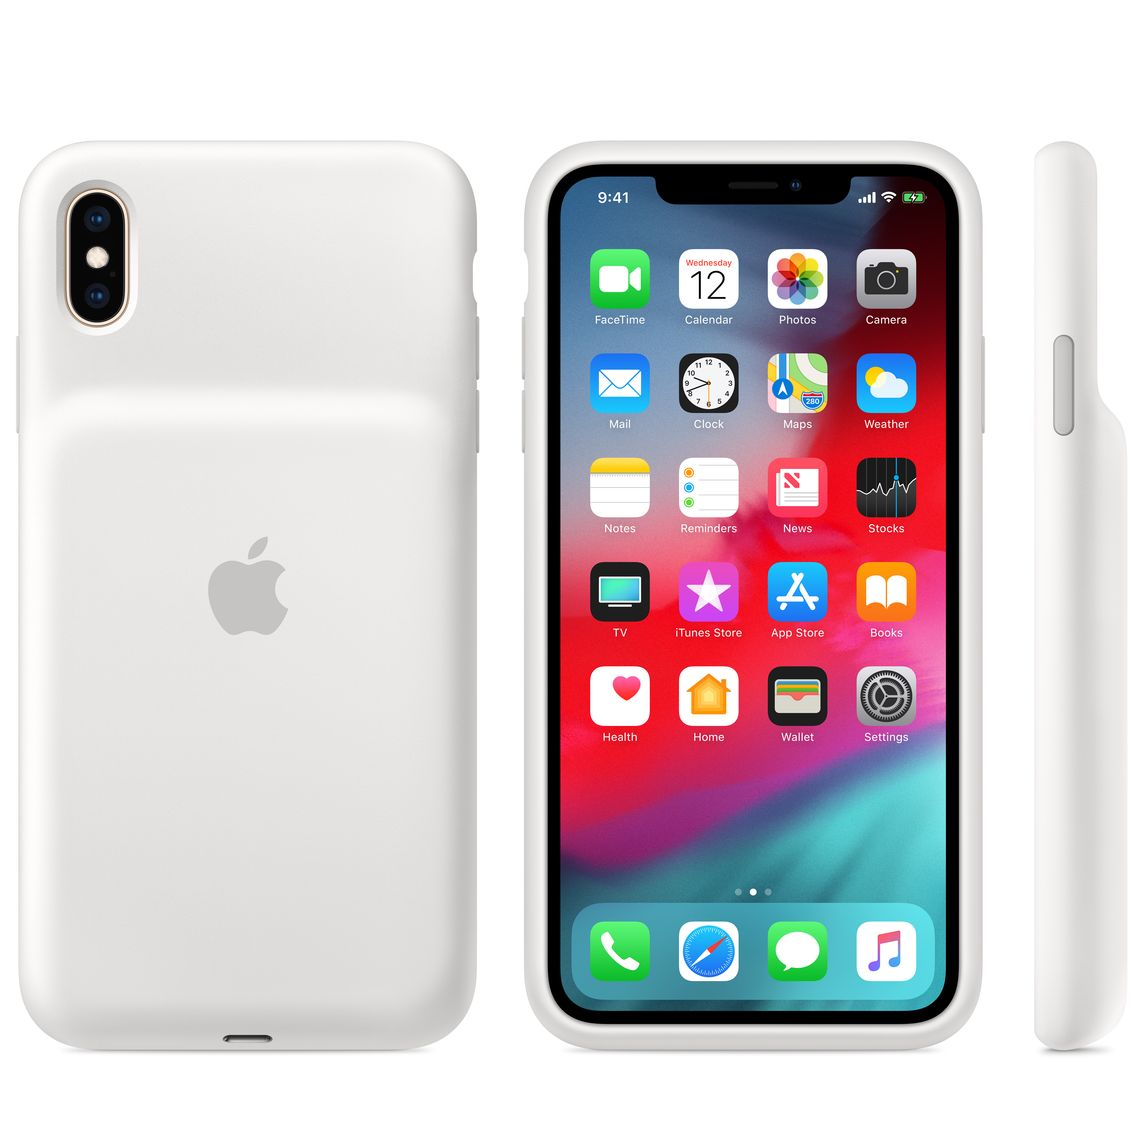 new concept 236c6 4e3a3 iPhone XS Max Smart Battery Case - White